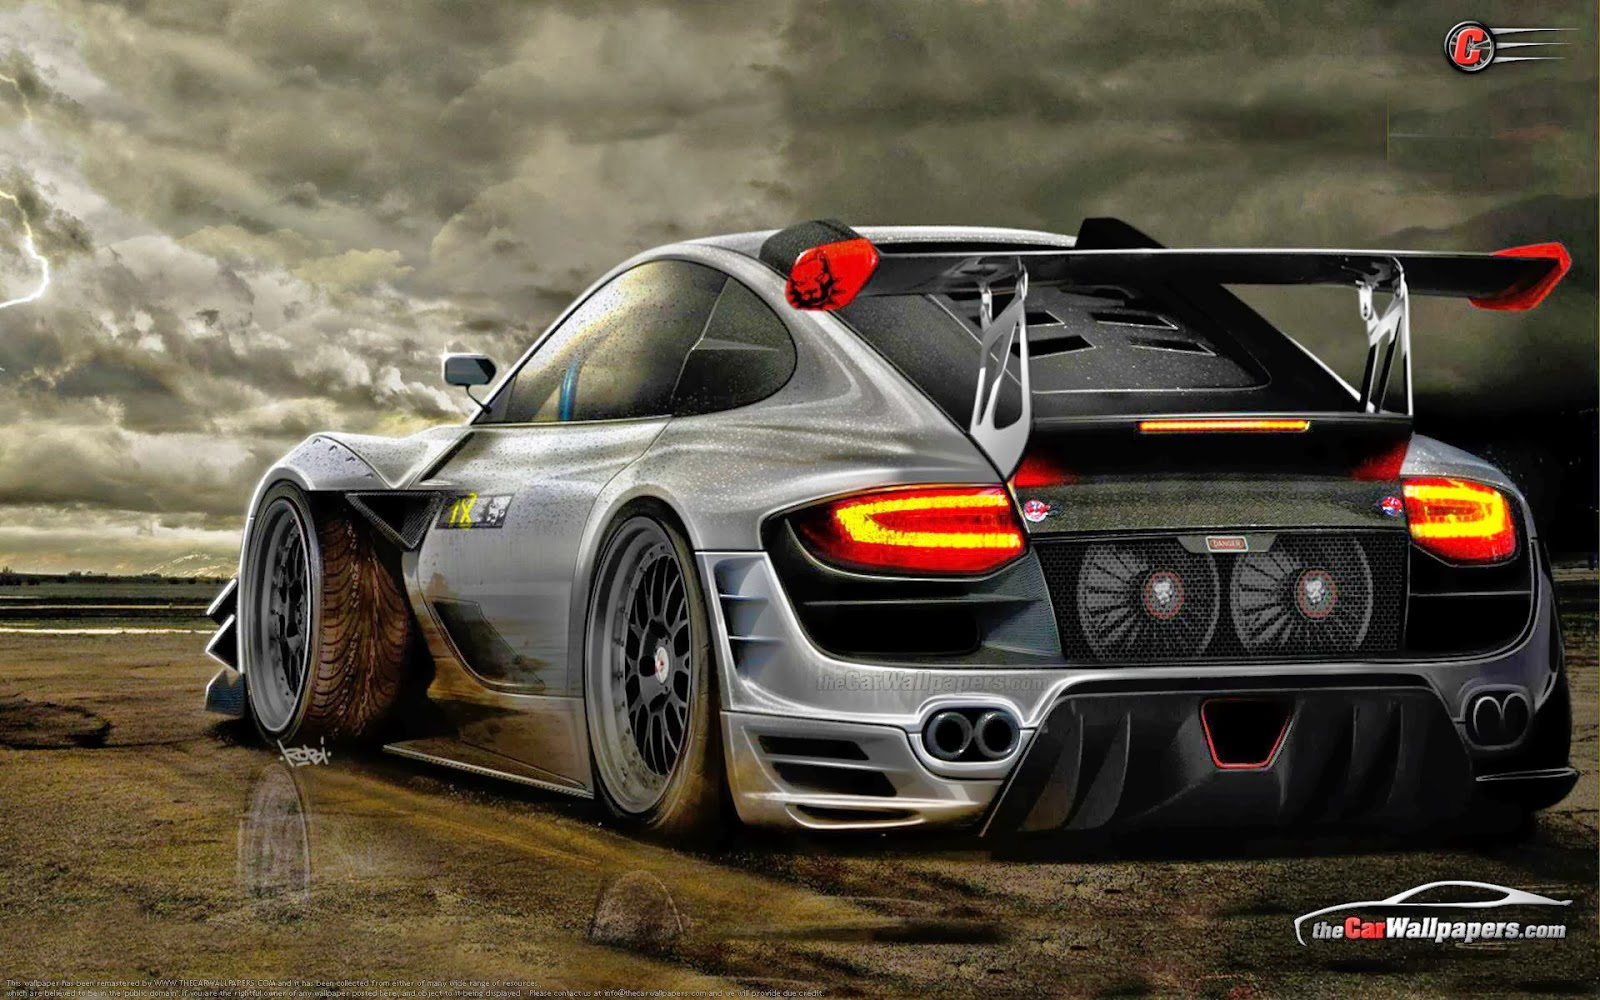 Top Wallpapers Images World Beautiful Car Wallpapers 1600x1000